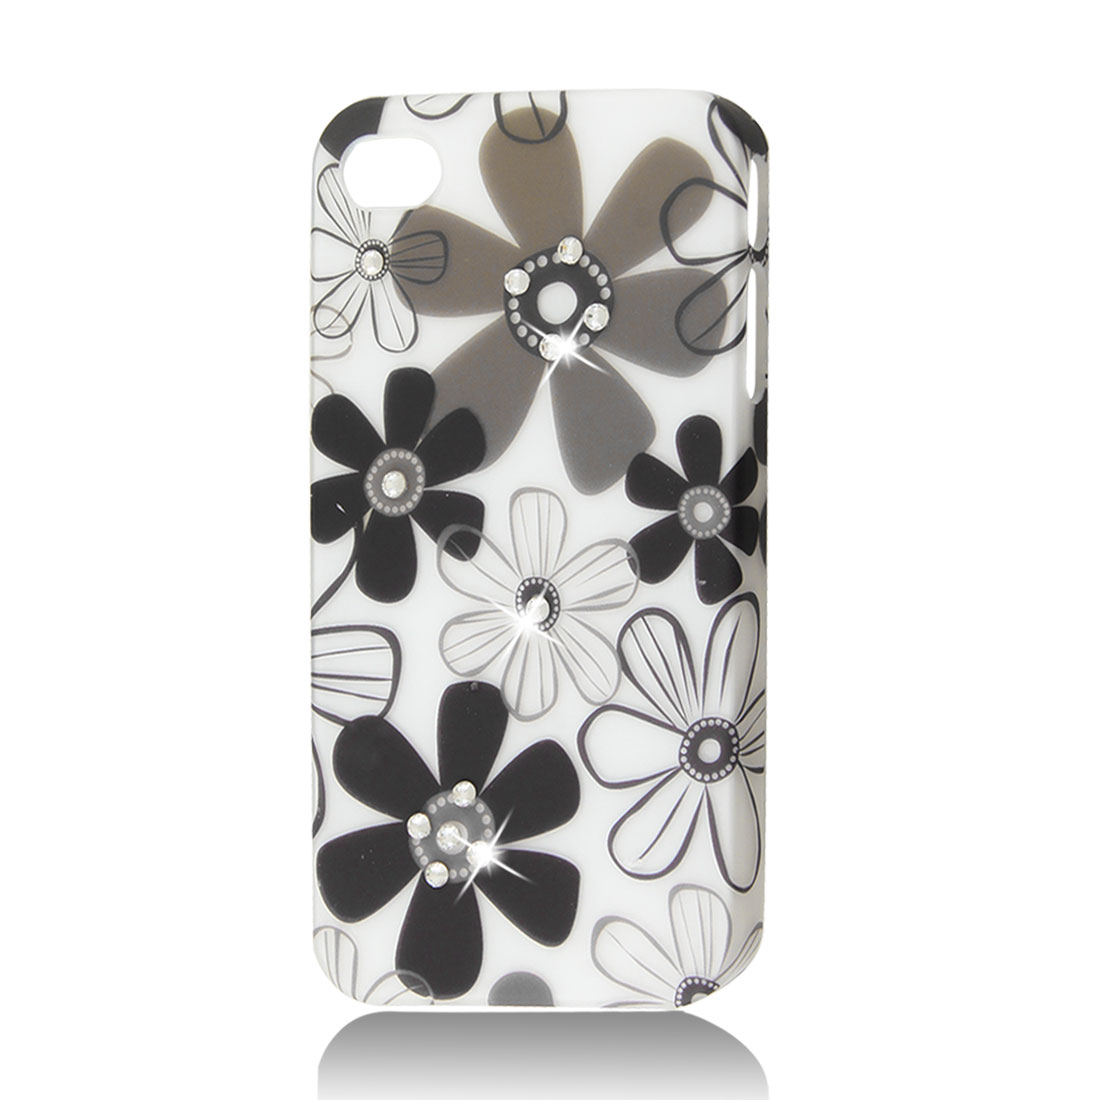 White Rhinestone Flower Protective Hard Back Case Cover Skin for iPhone 4 4G